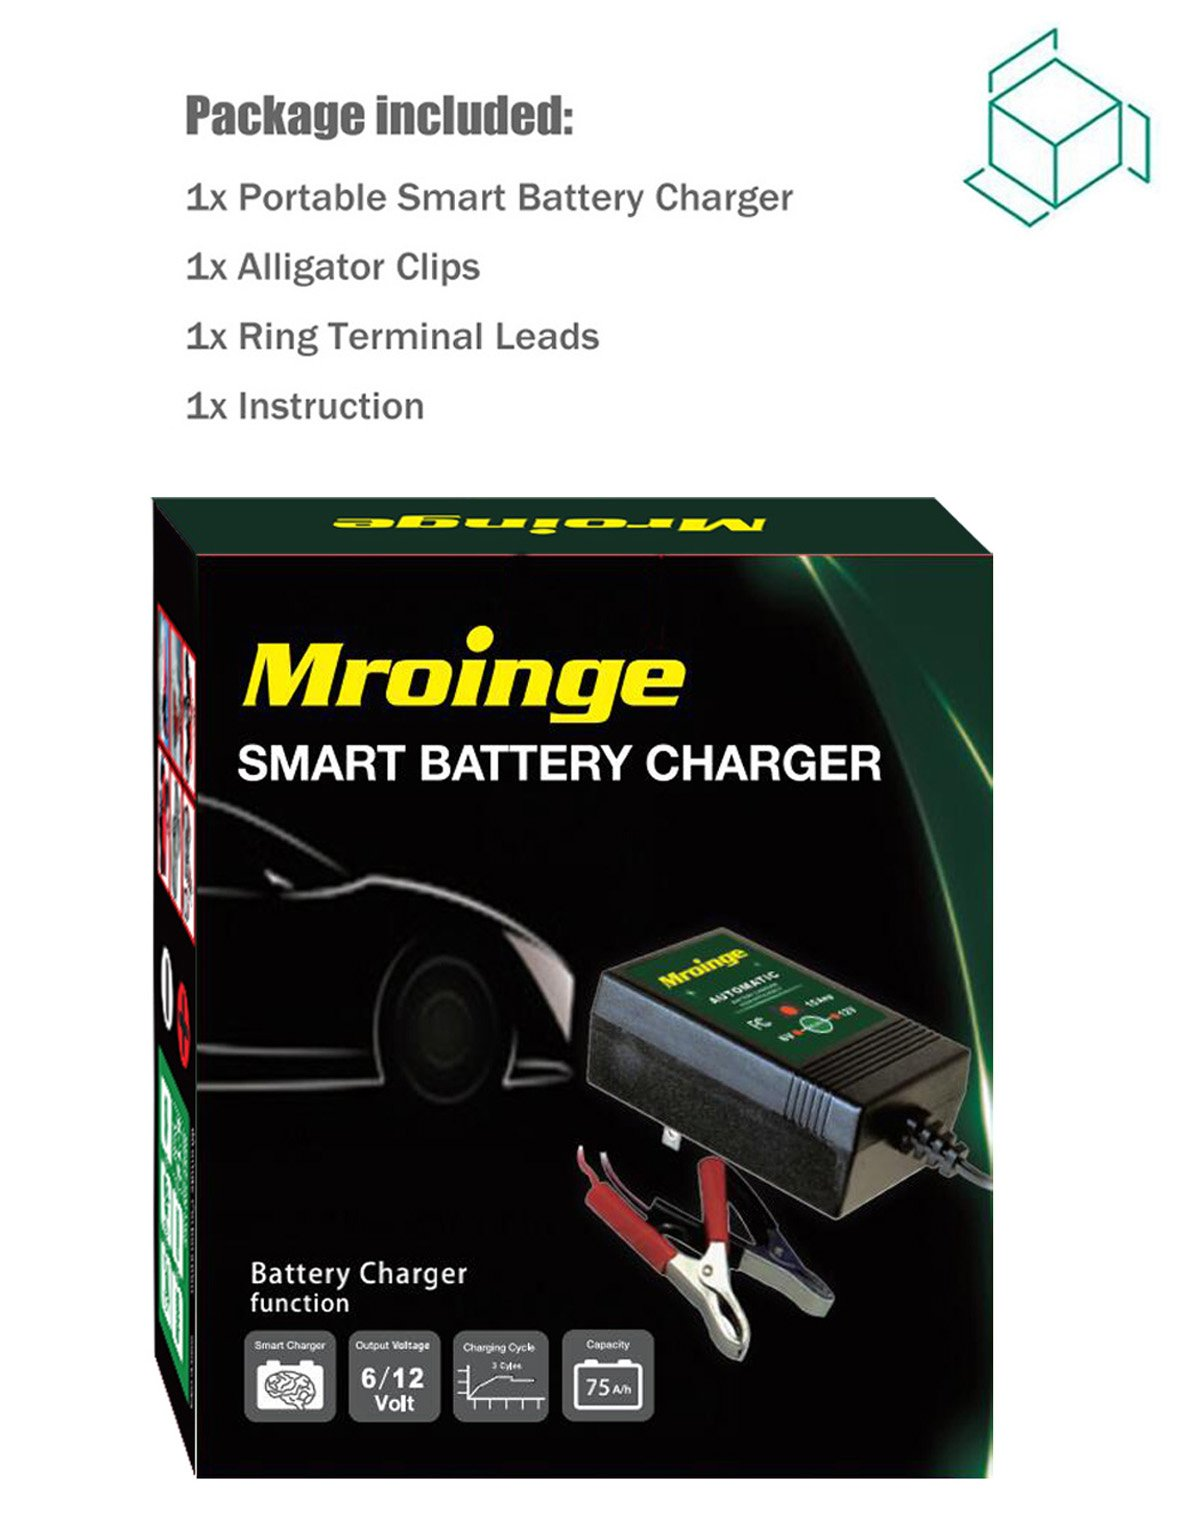 Mroinge automotive trickle battery charger maintainer 12V 1A for car motorcycle Lawn Mower SLA ATV WET AGM GEL CELL Lead Acid Batteries, Smart battery charger is tender charge for protect your battery by Mroinge (Image #7)